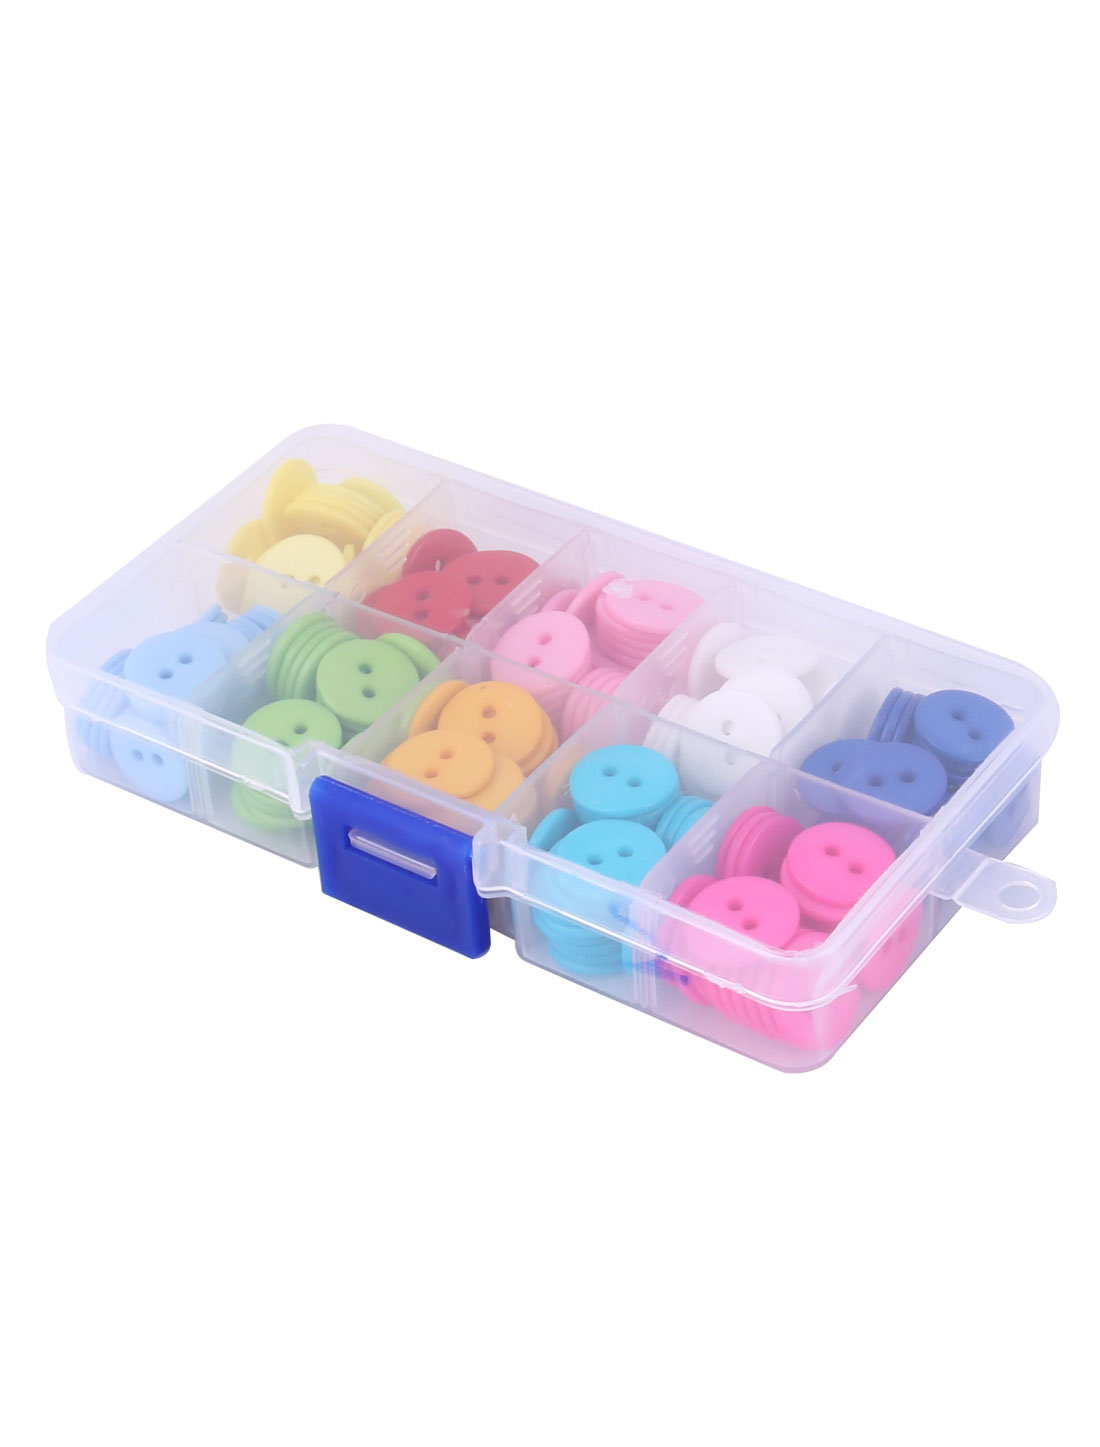 Tailor Sewer 2 Holes Plastic Assorted Color Sewing Button in Box 250pcs